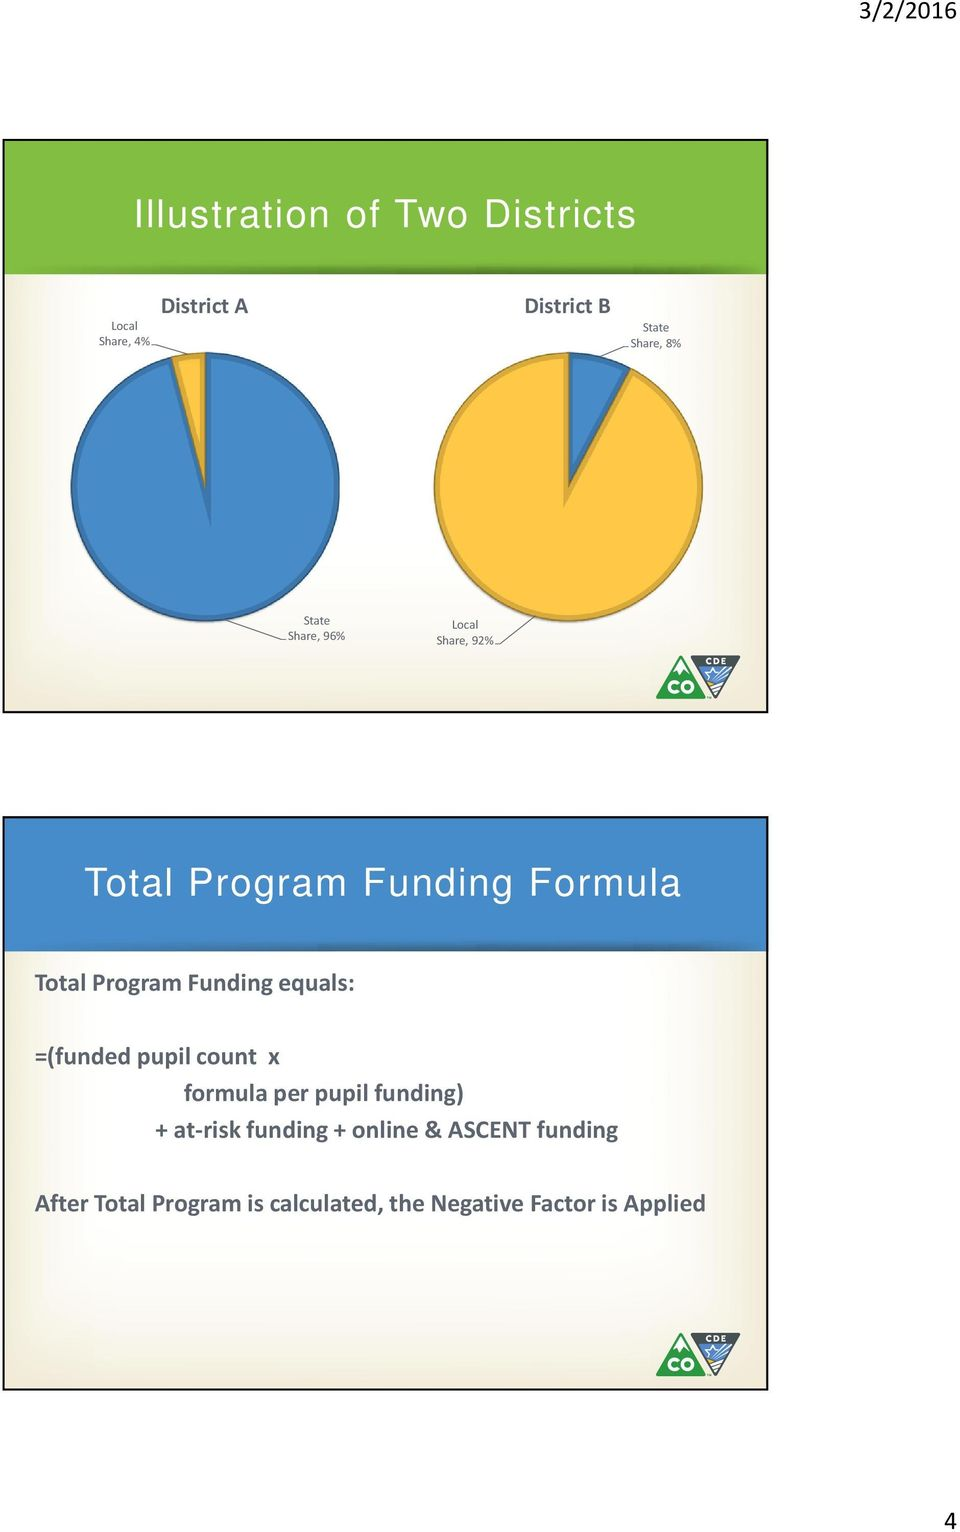 Funding equals: =(funded pupil count x formula per pupil funding) + at-risk funding